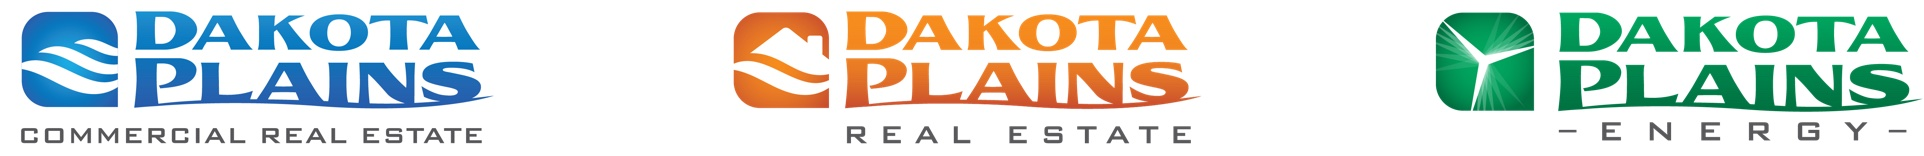 Dakota Plains Commercial Real Estate